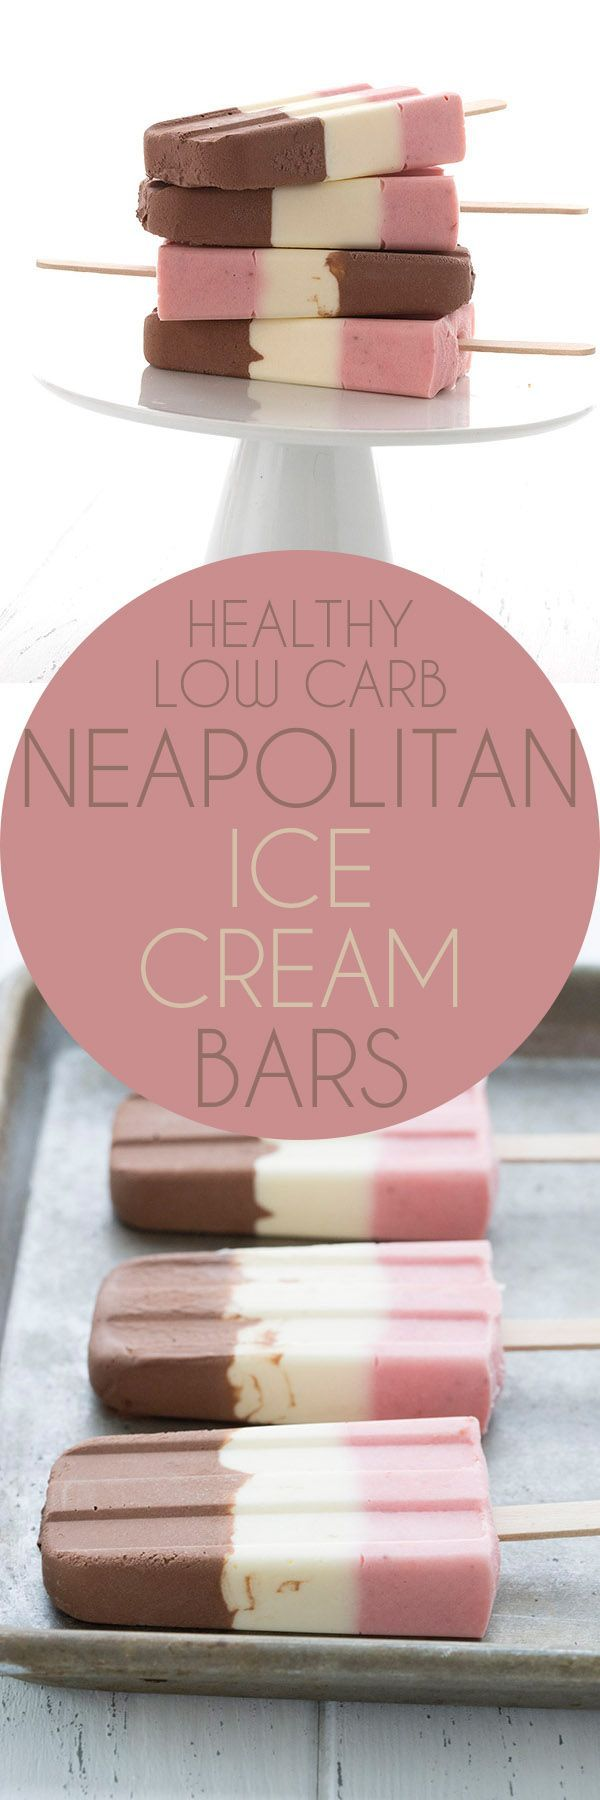 Relive your childhood with these easy and healthy low carb Neapolitan Ice Cream Bars! A delicious keto summer treat. via @dreamaboutfood